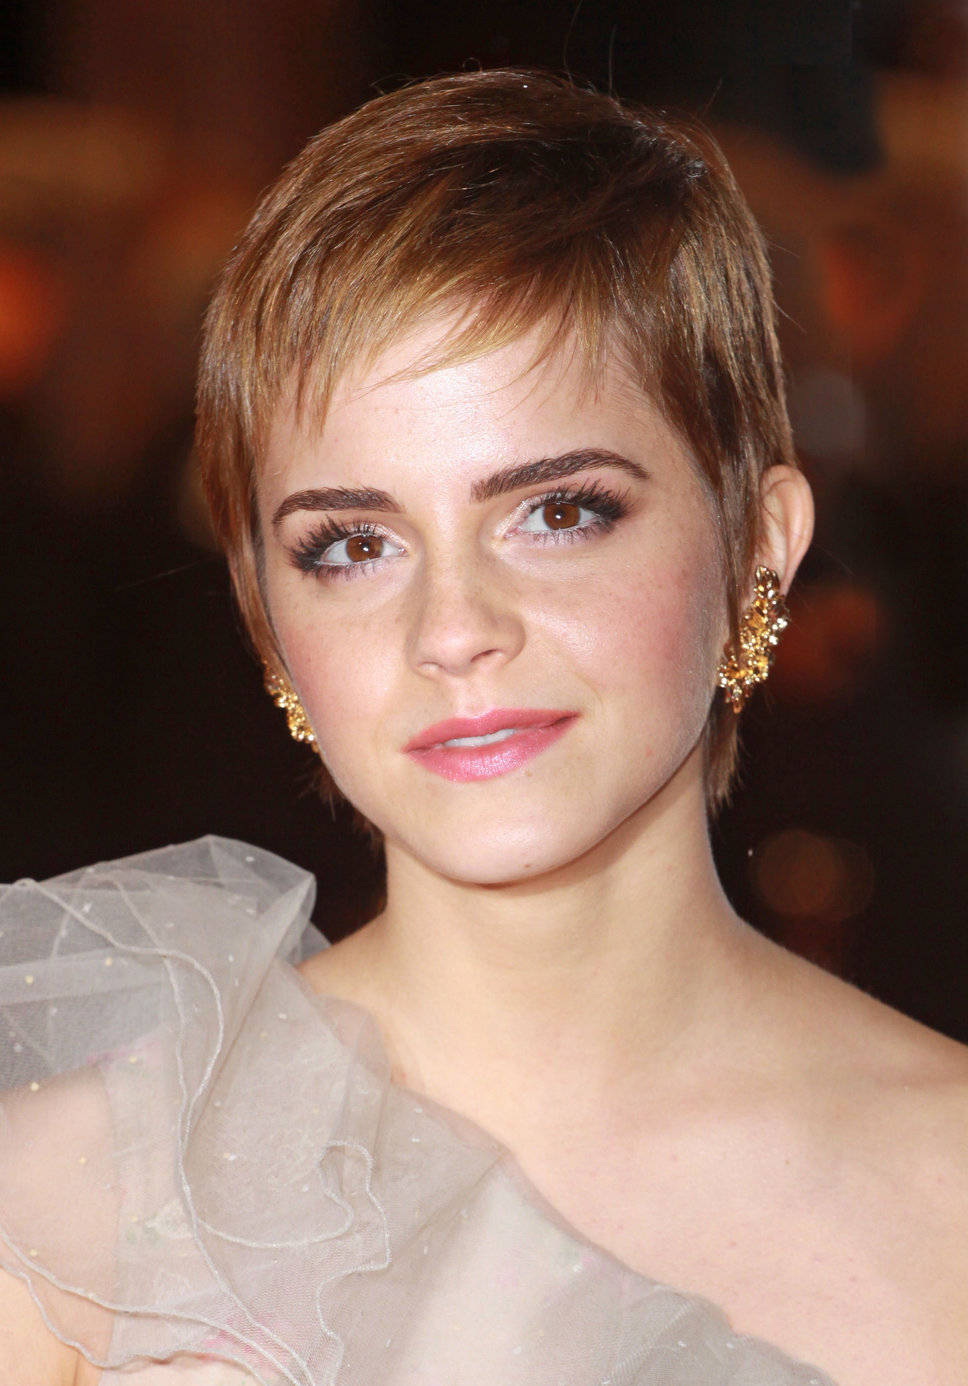 Brilliant Emma Watson Soft Pixie Hair Cut With Wispy Bangs Women Hairstyles Short Hairstyles For Black Women Fulllsitofus